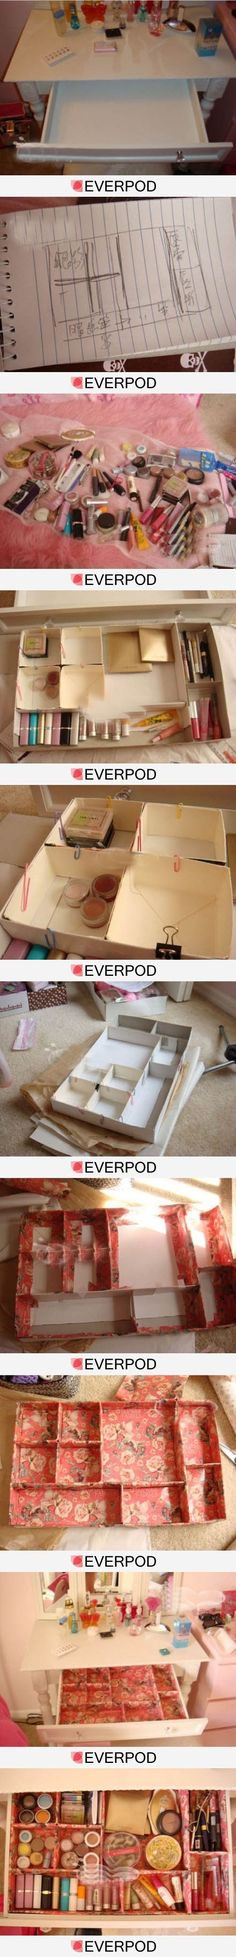 DIY drawer organizer. I need to make two of these, One for my Jewlery box, the other for my makeup drawer.